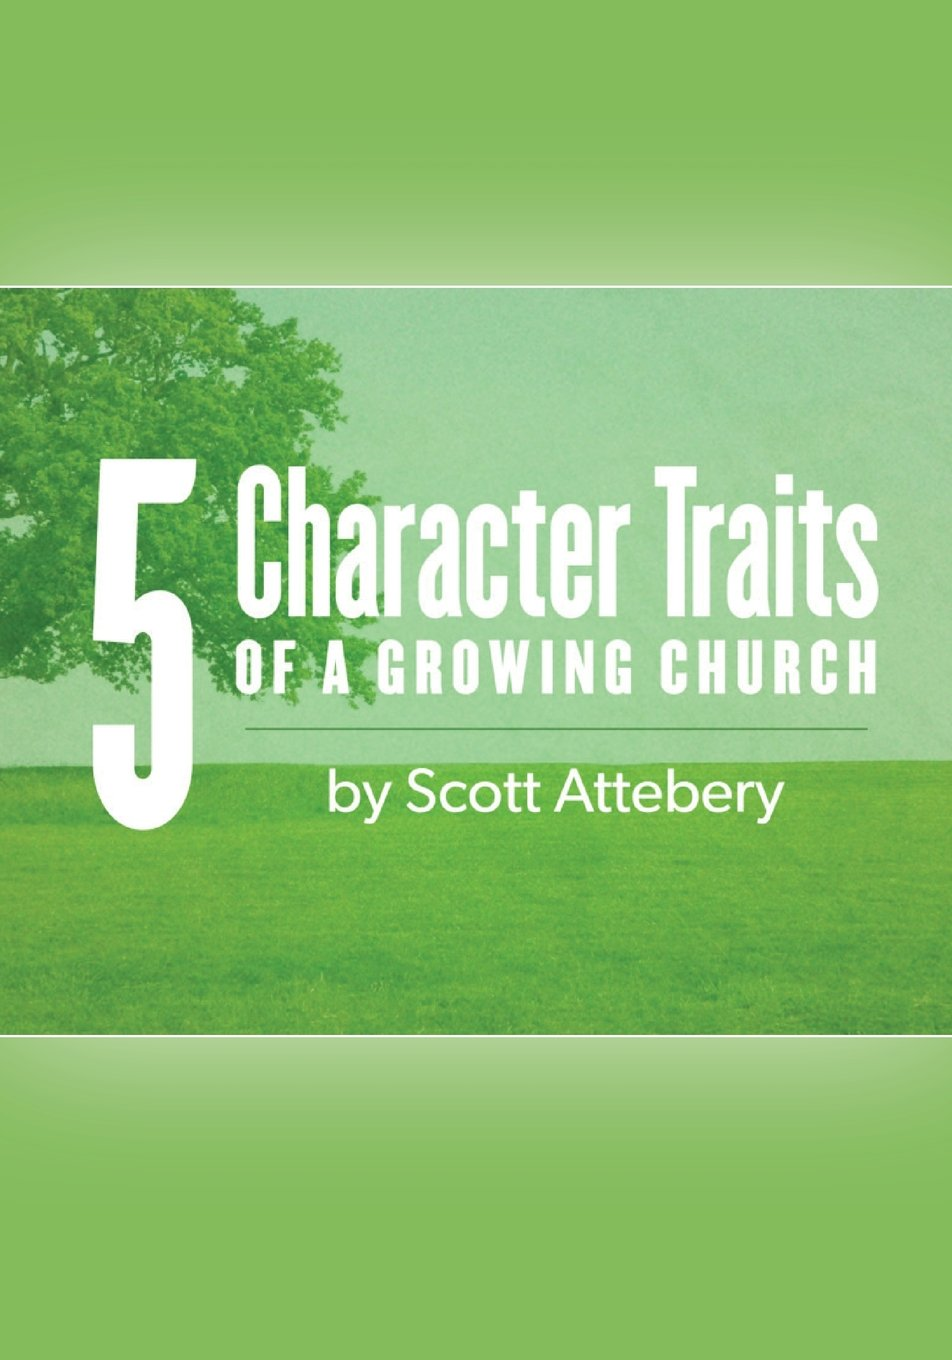 Download Five Character Traits of a Growing Church PDF